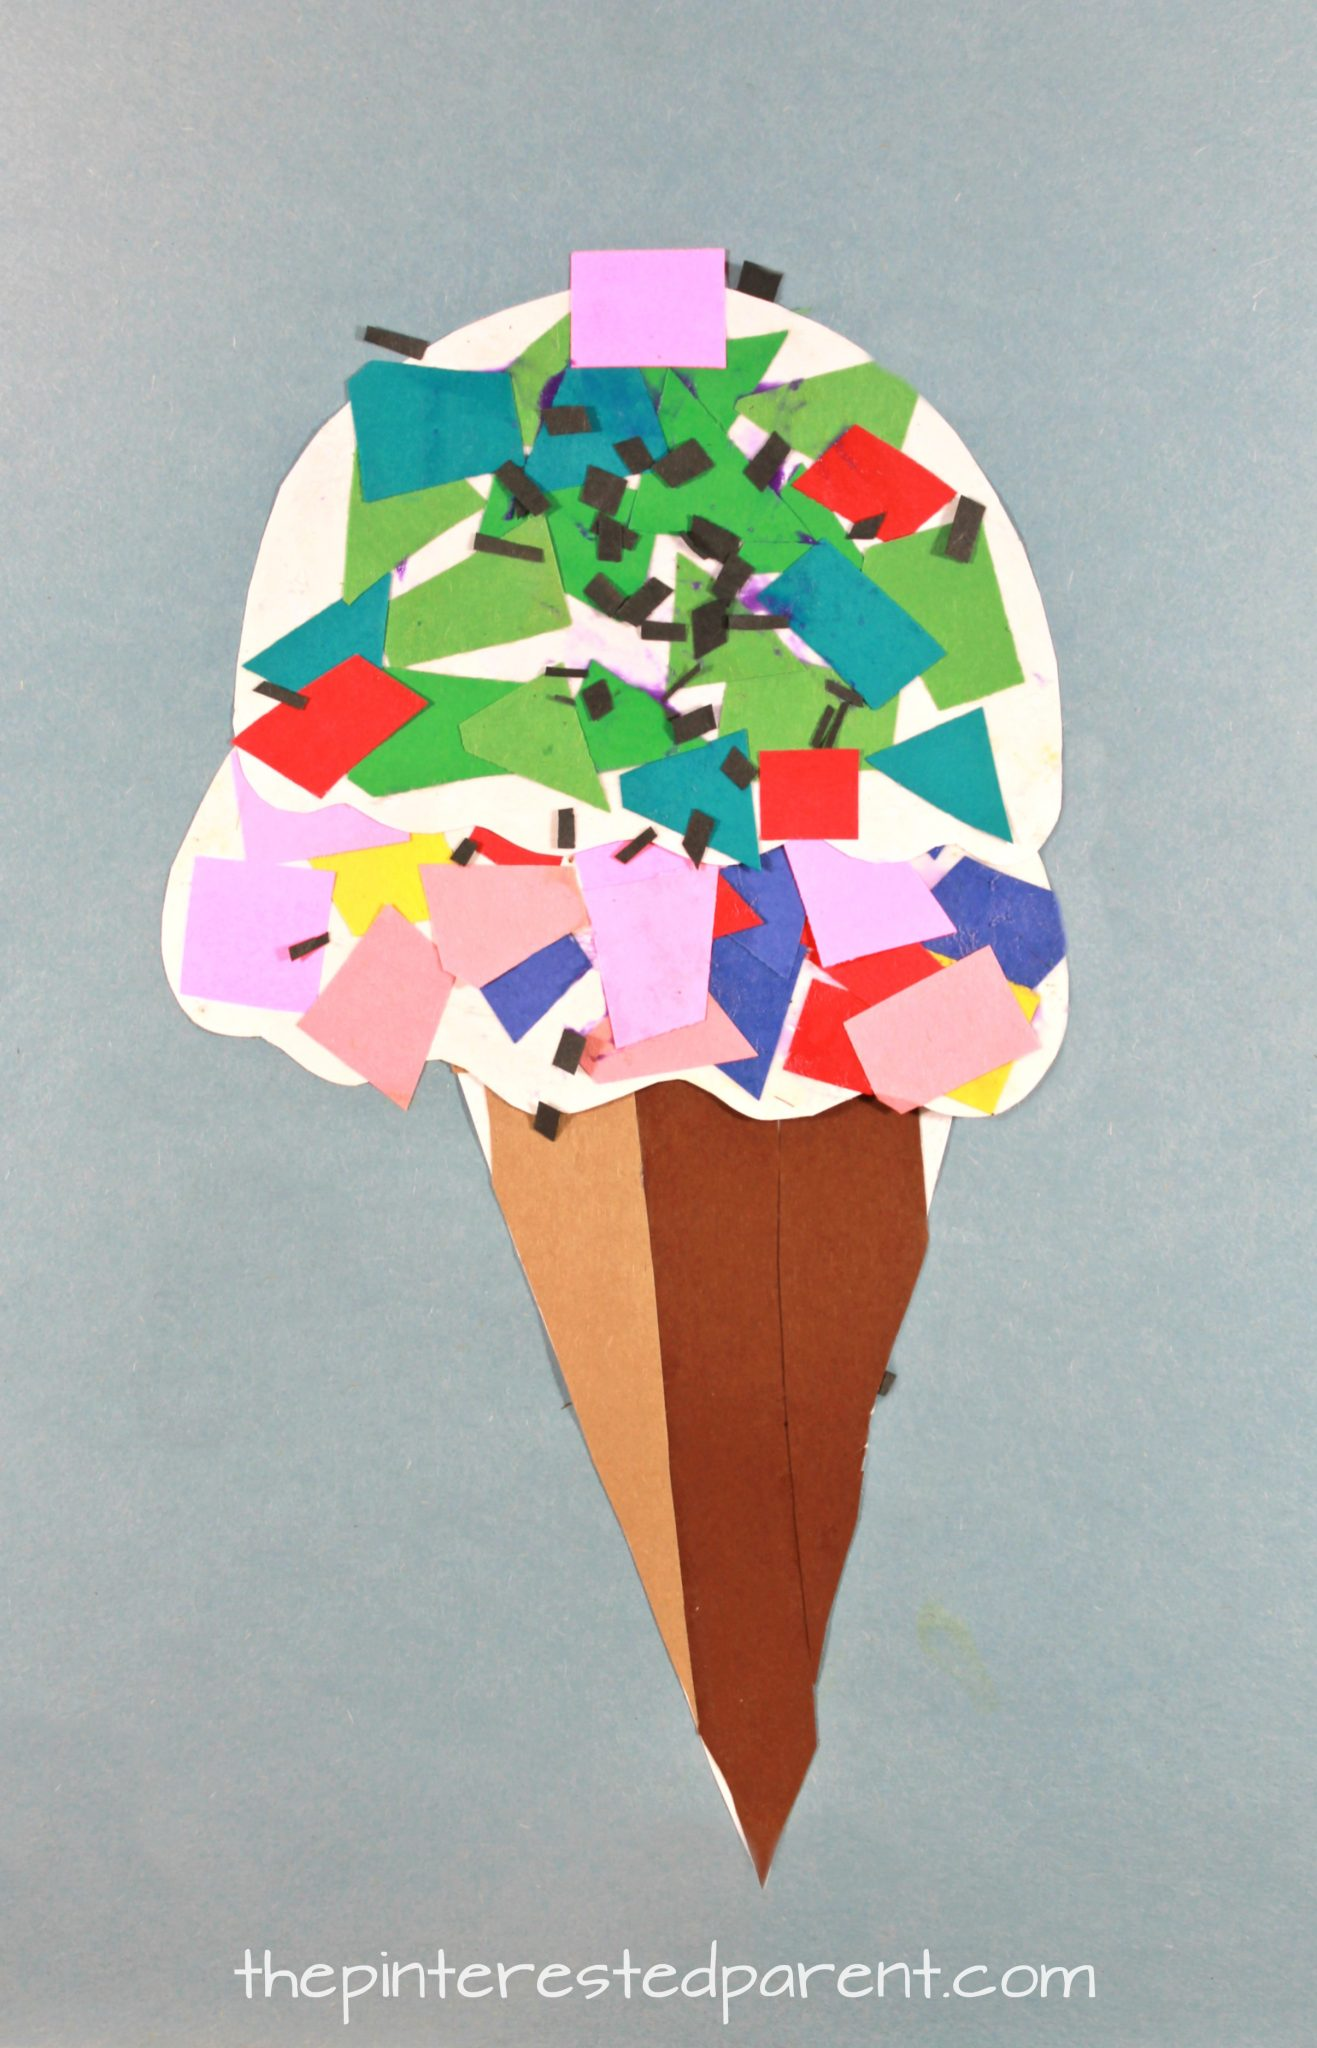 Printable Paper Mosaic Ice Cream Cone \u2013 The Pinterested Parent